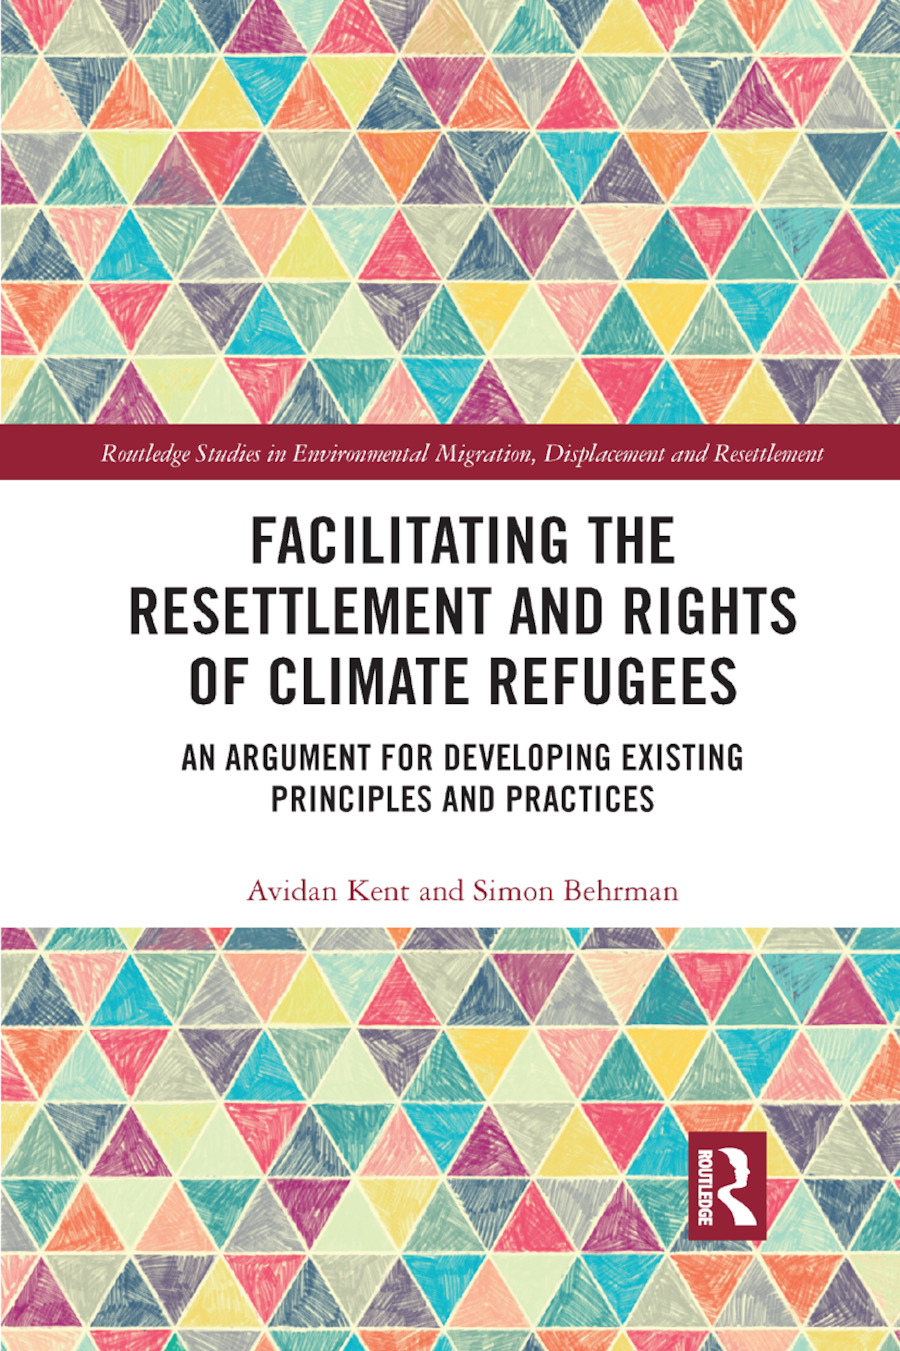 Facilitating the Resettlement and Rights of Climate Refugees: An Argument for Developing Existing Principles and Practices book cover